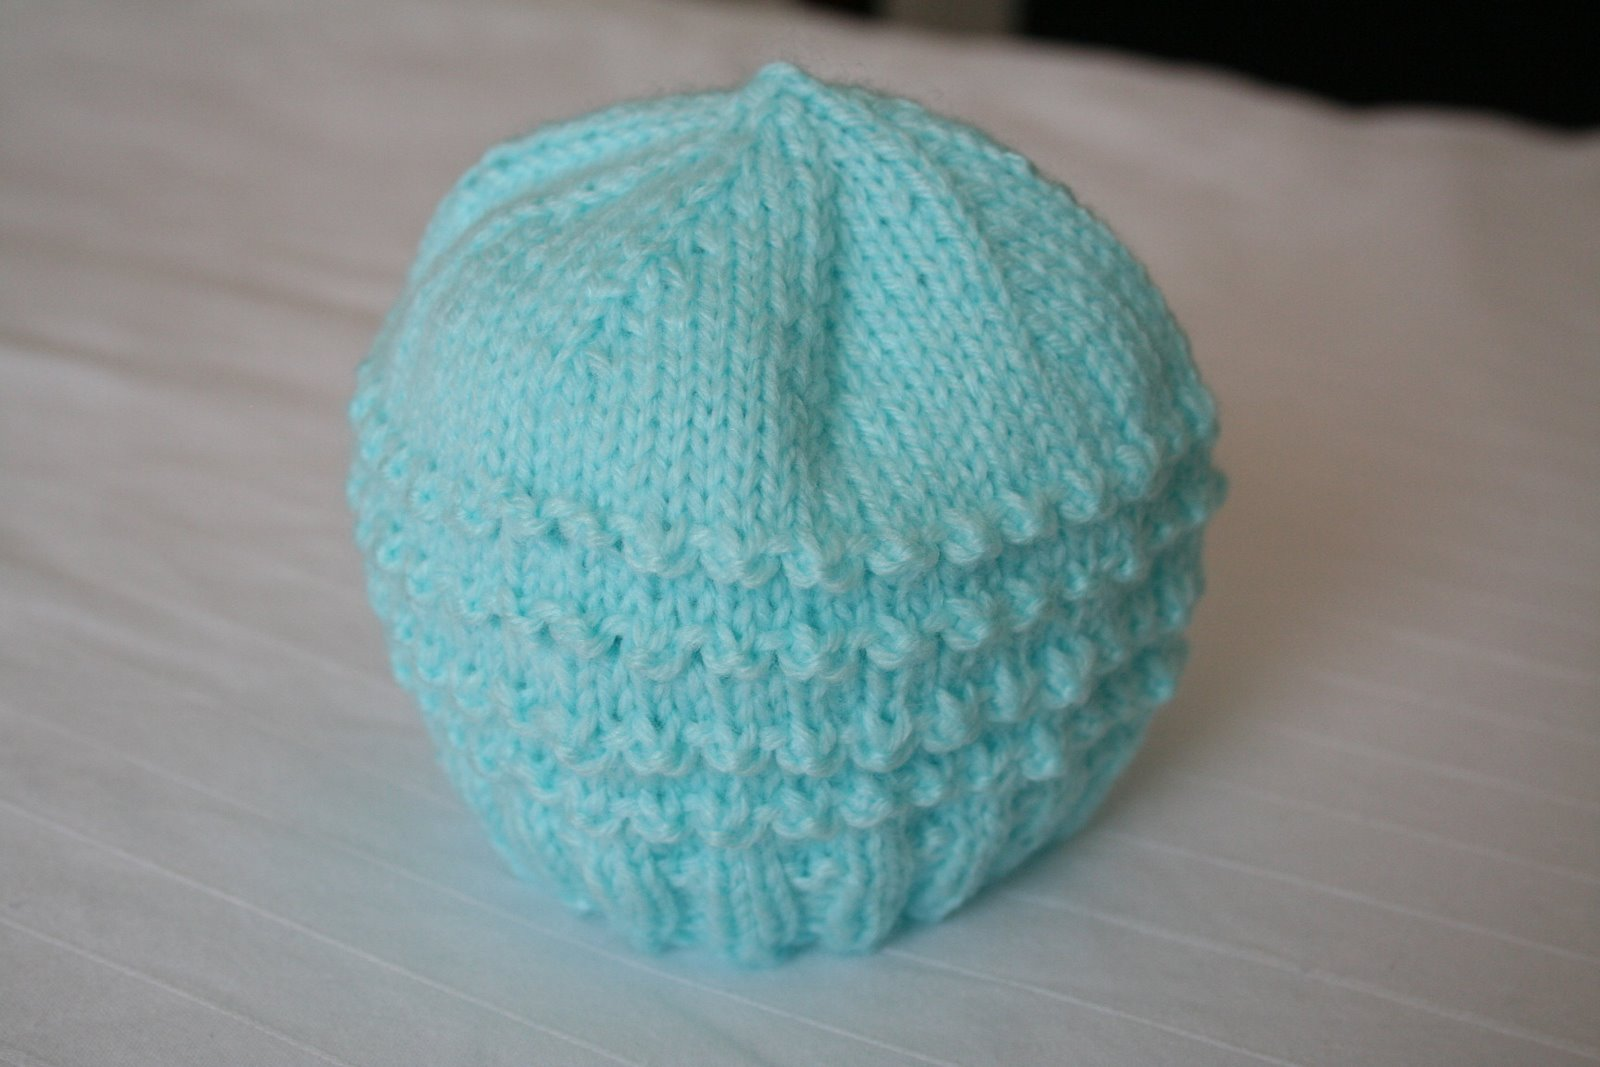 Preemie Knit Hat Pattern | A Knitting Blog